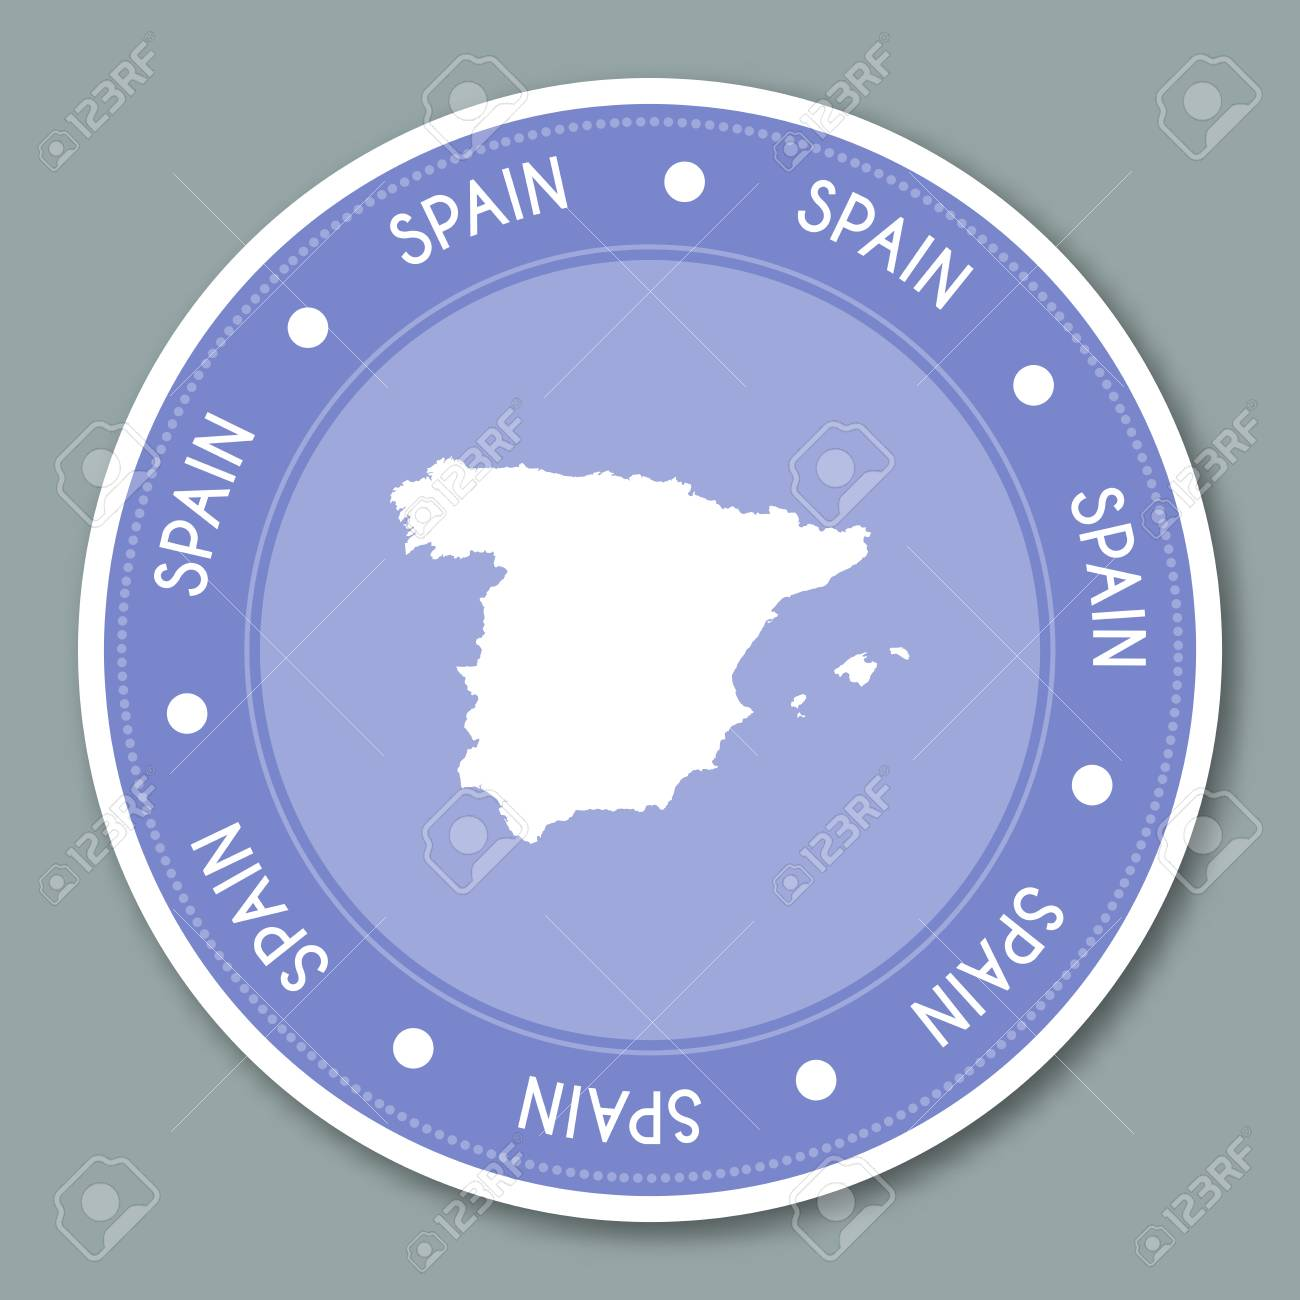 Map Of Spain To Label.Spain Label Flat Sticker Design Patriotic Country Map Round